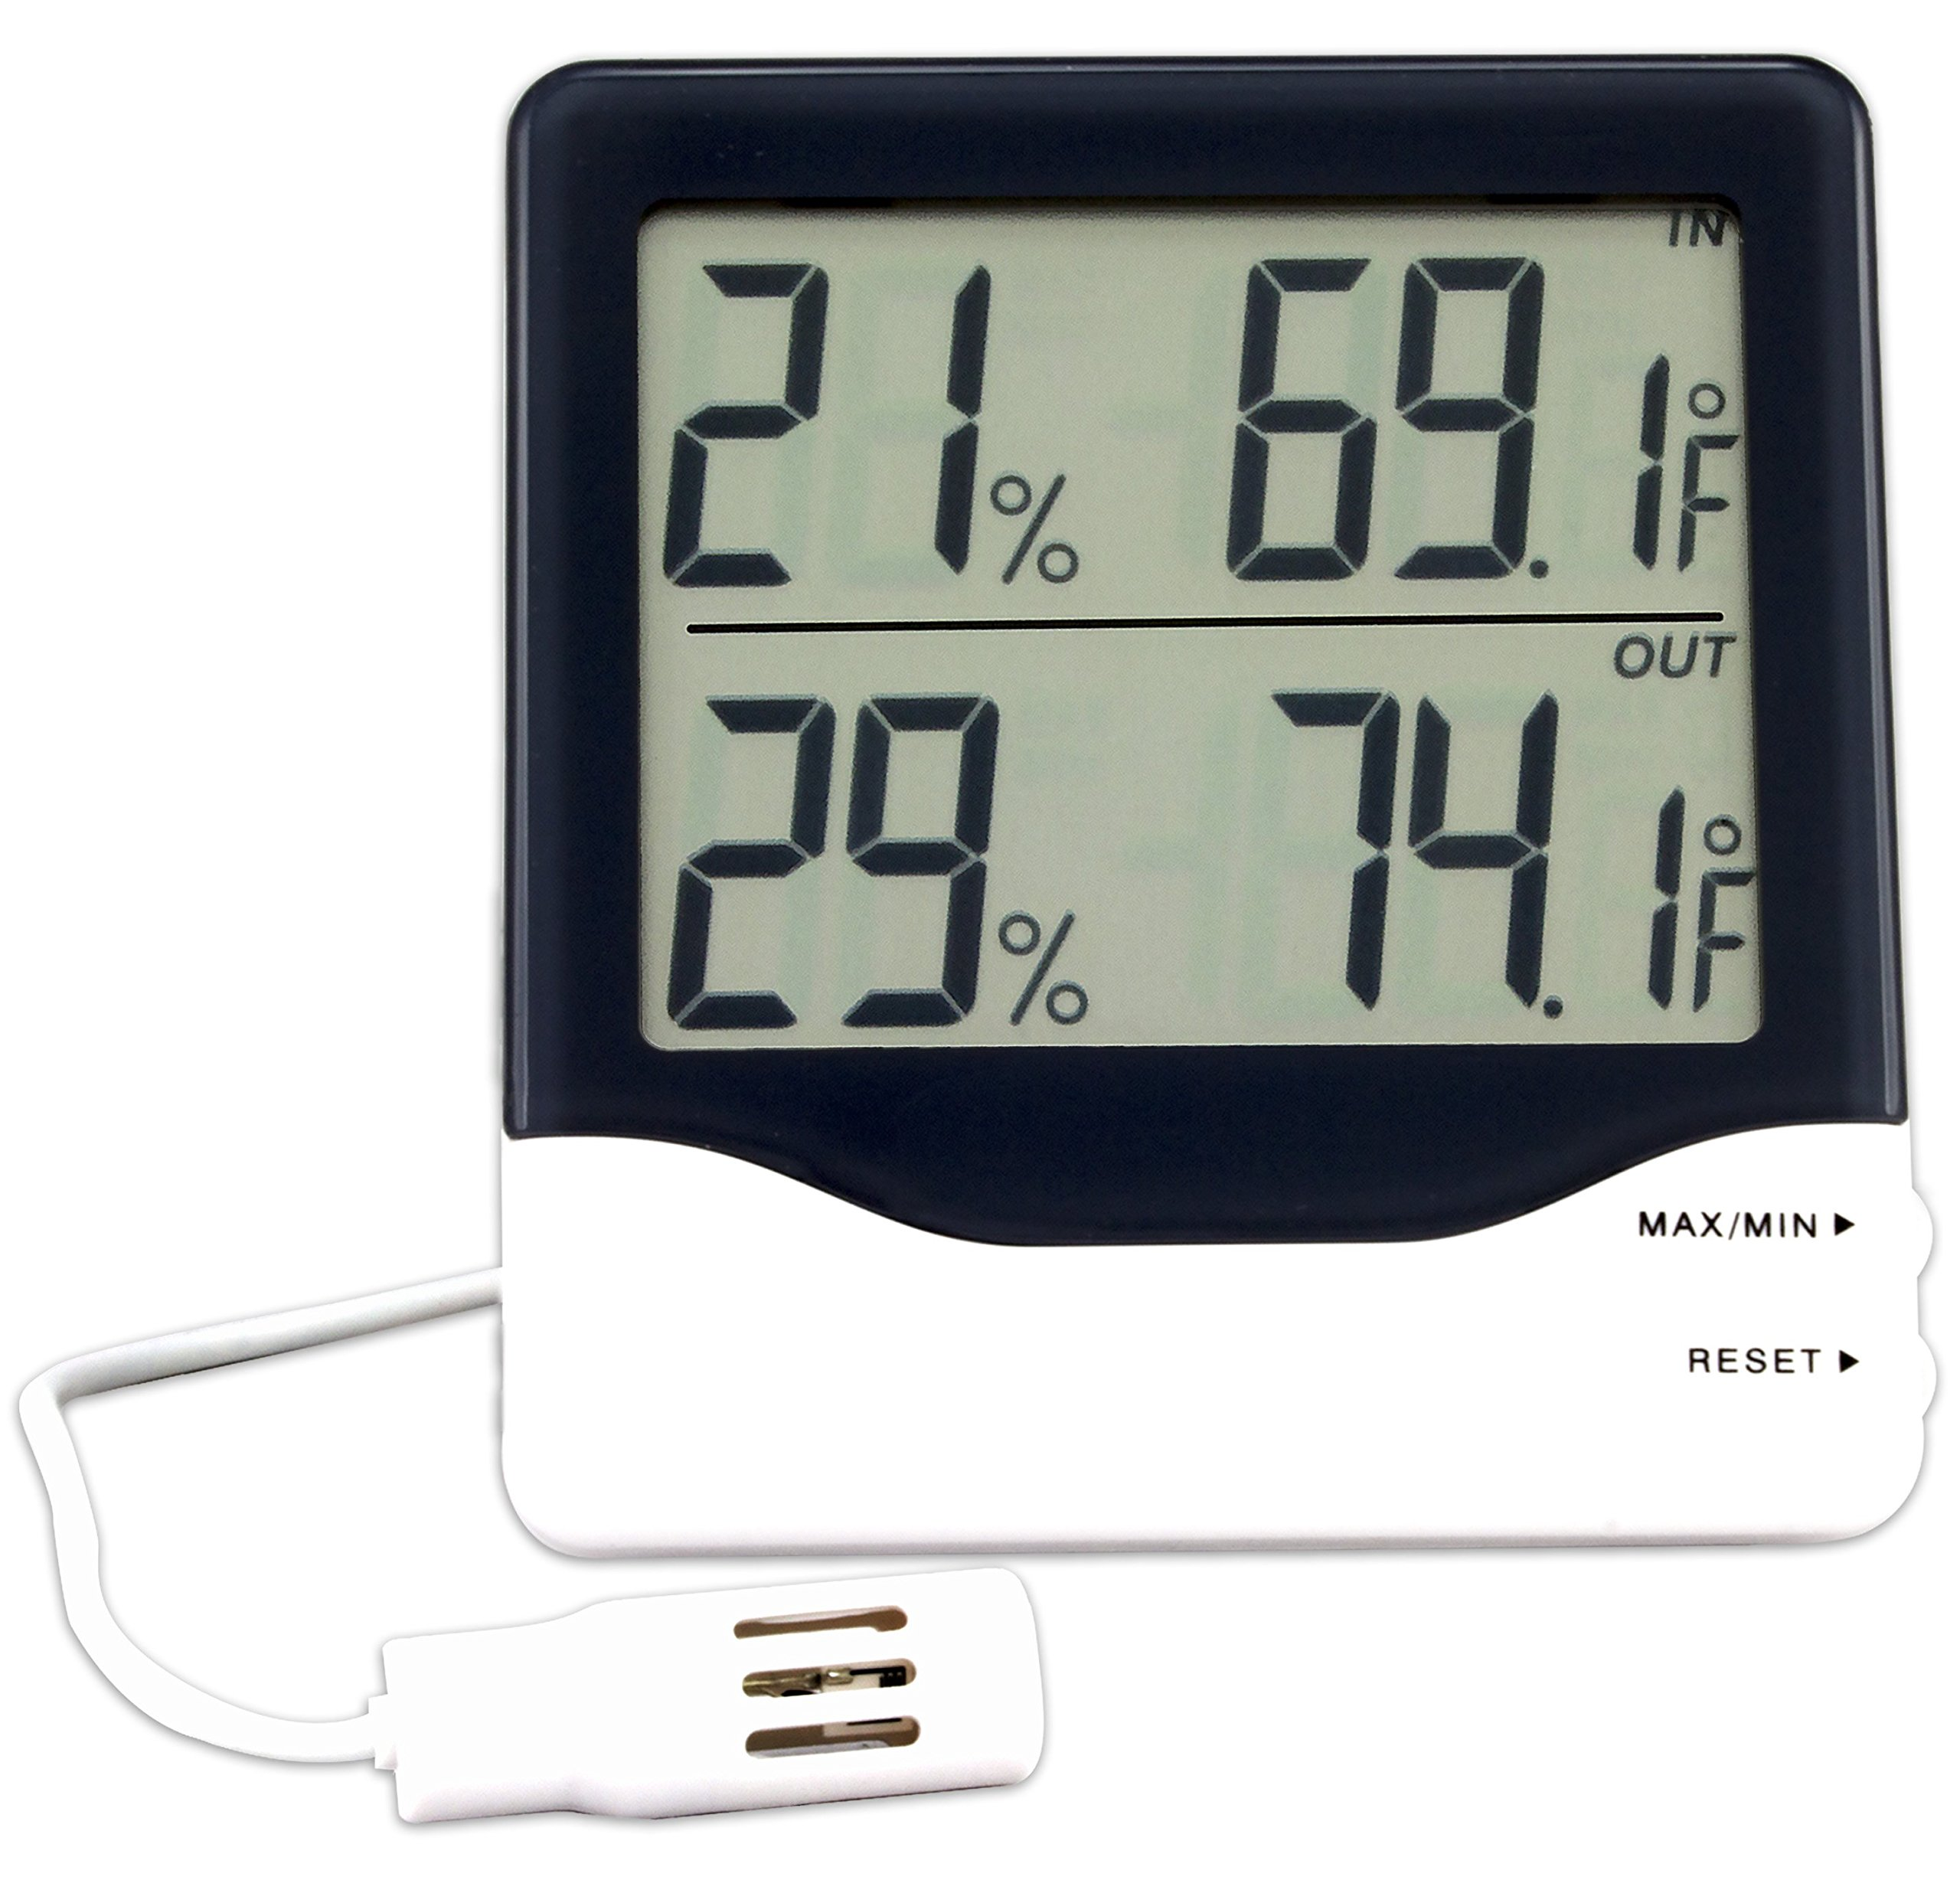 La Crosse Technology 30.5013 Digital Thermo-Hygrometer with Wired probe by La Crosse Technology